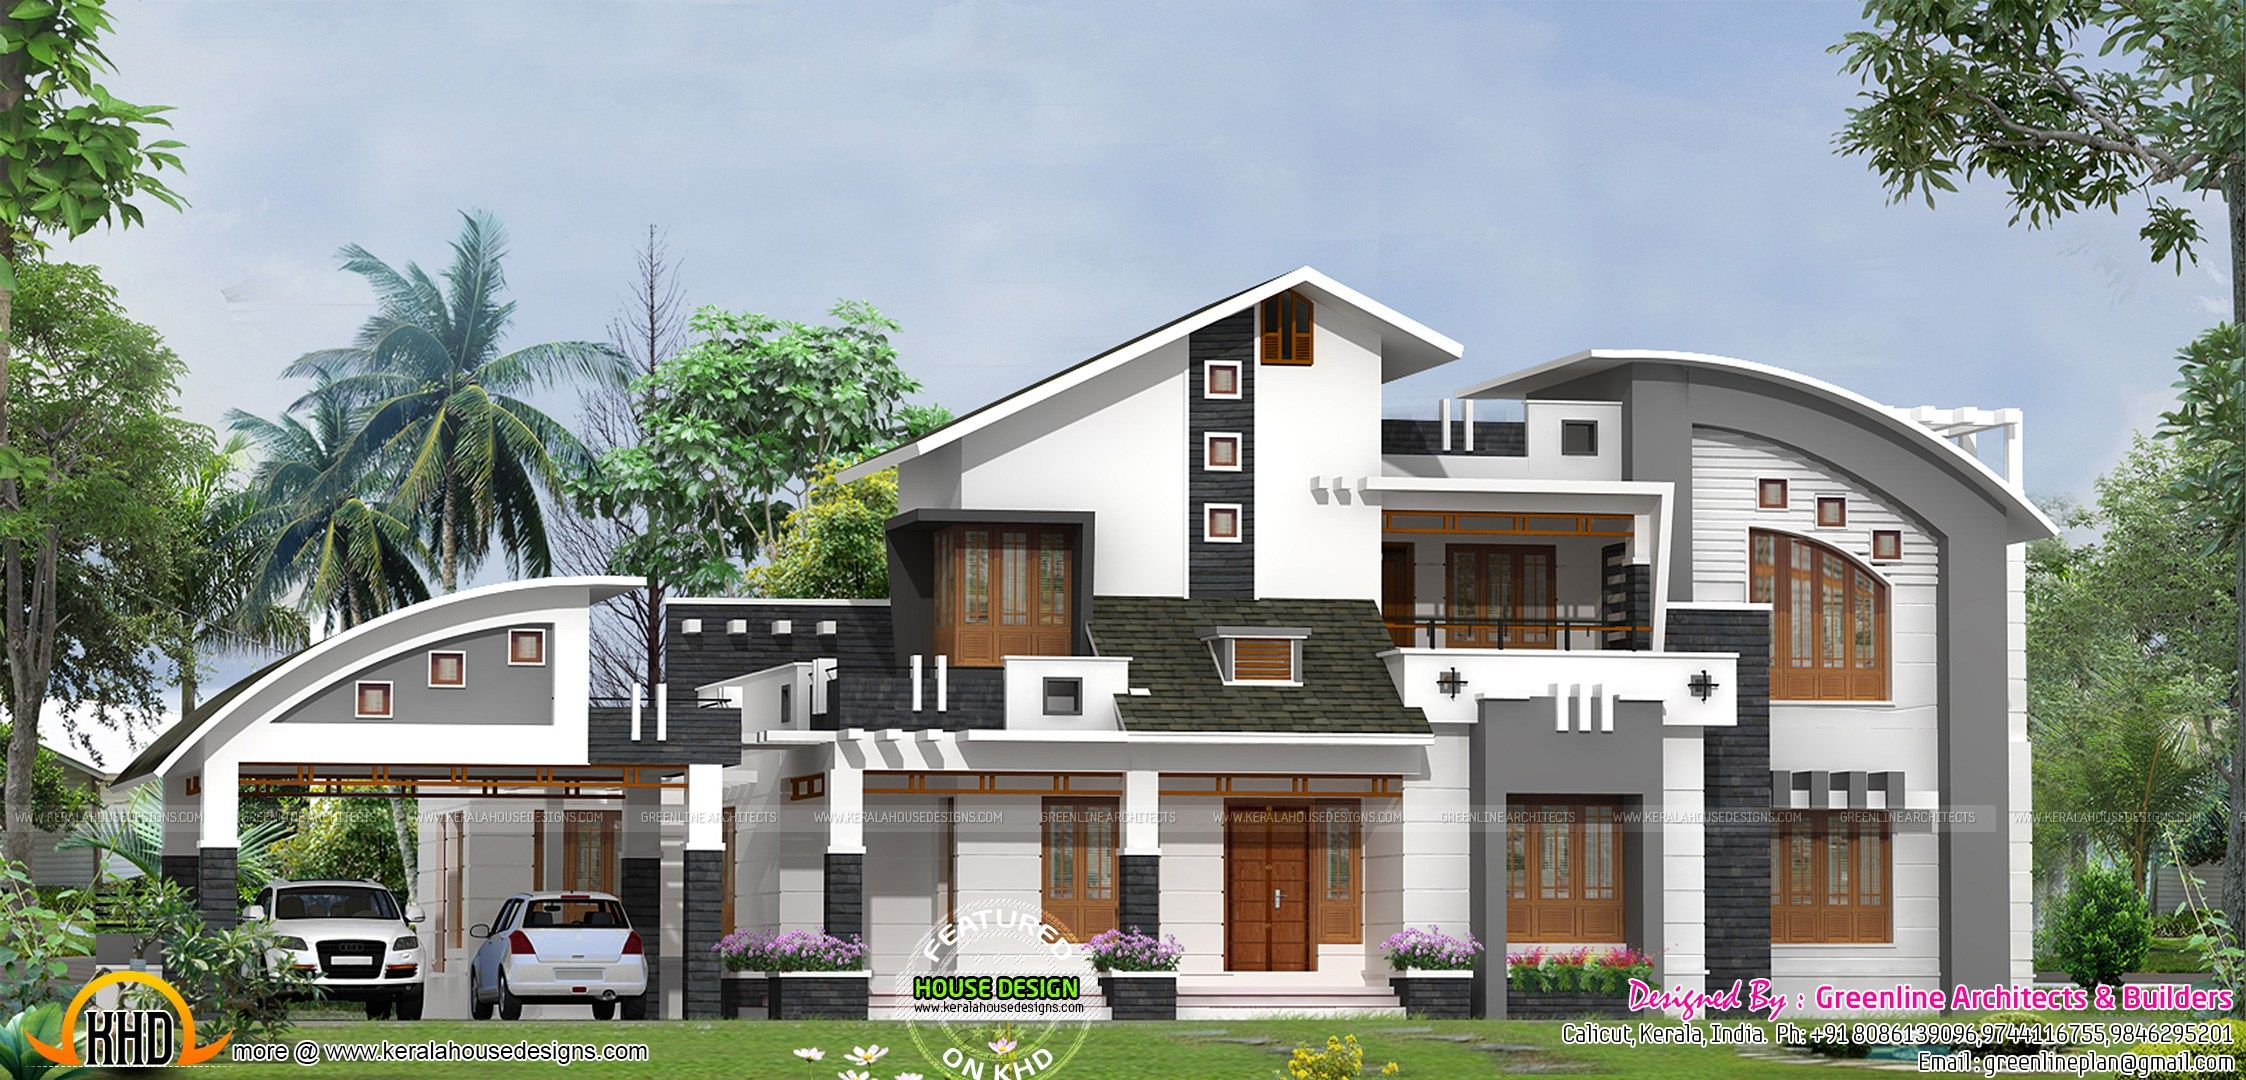 Delightful Contemporary Mix Villa Design Part - 11: Sloped Roof Modern Mix House Keralahousedesigns Sq Feet Flat Roof  Contemporary Home Design Home Kerala Plans Sloped Roof Modern Mix House  Keralahousedesigns ...